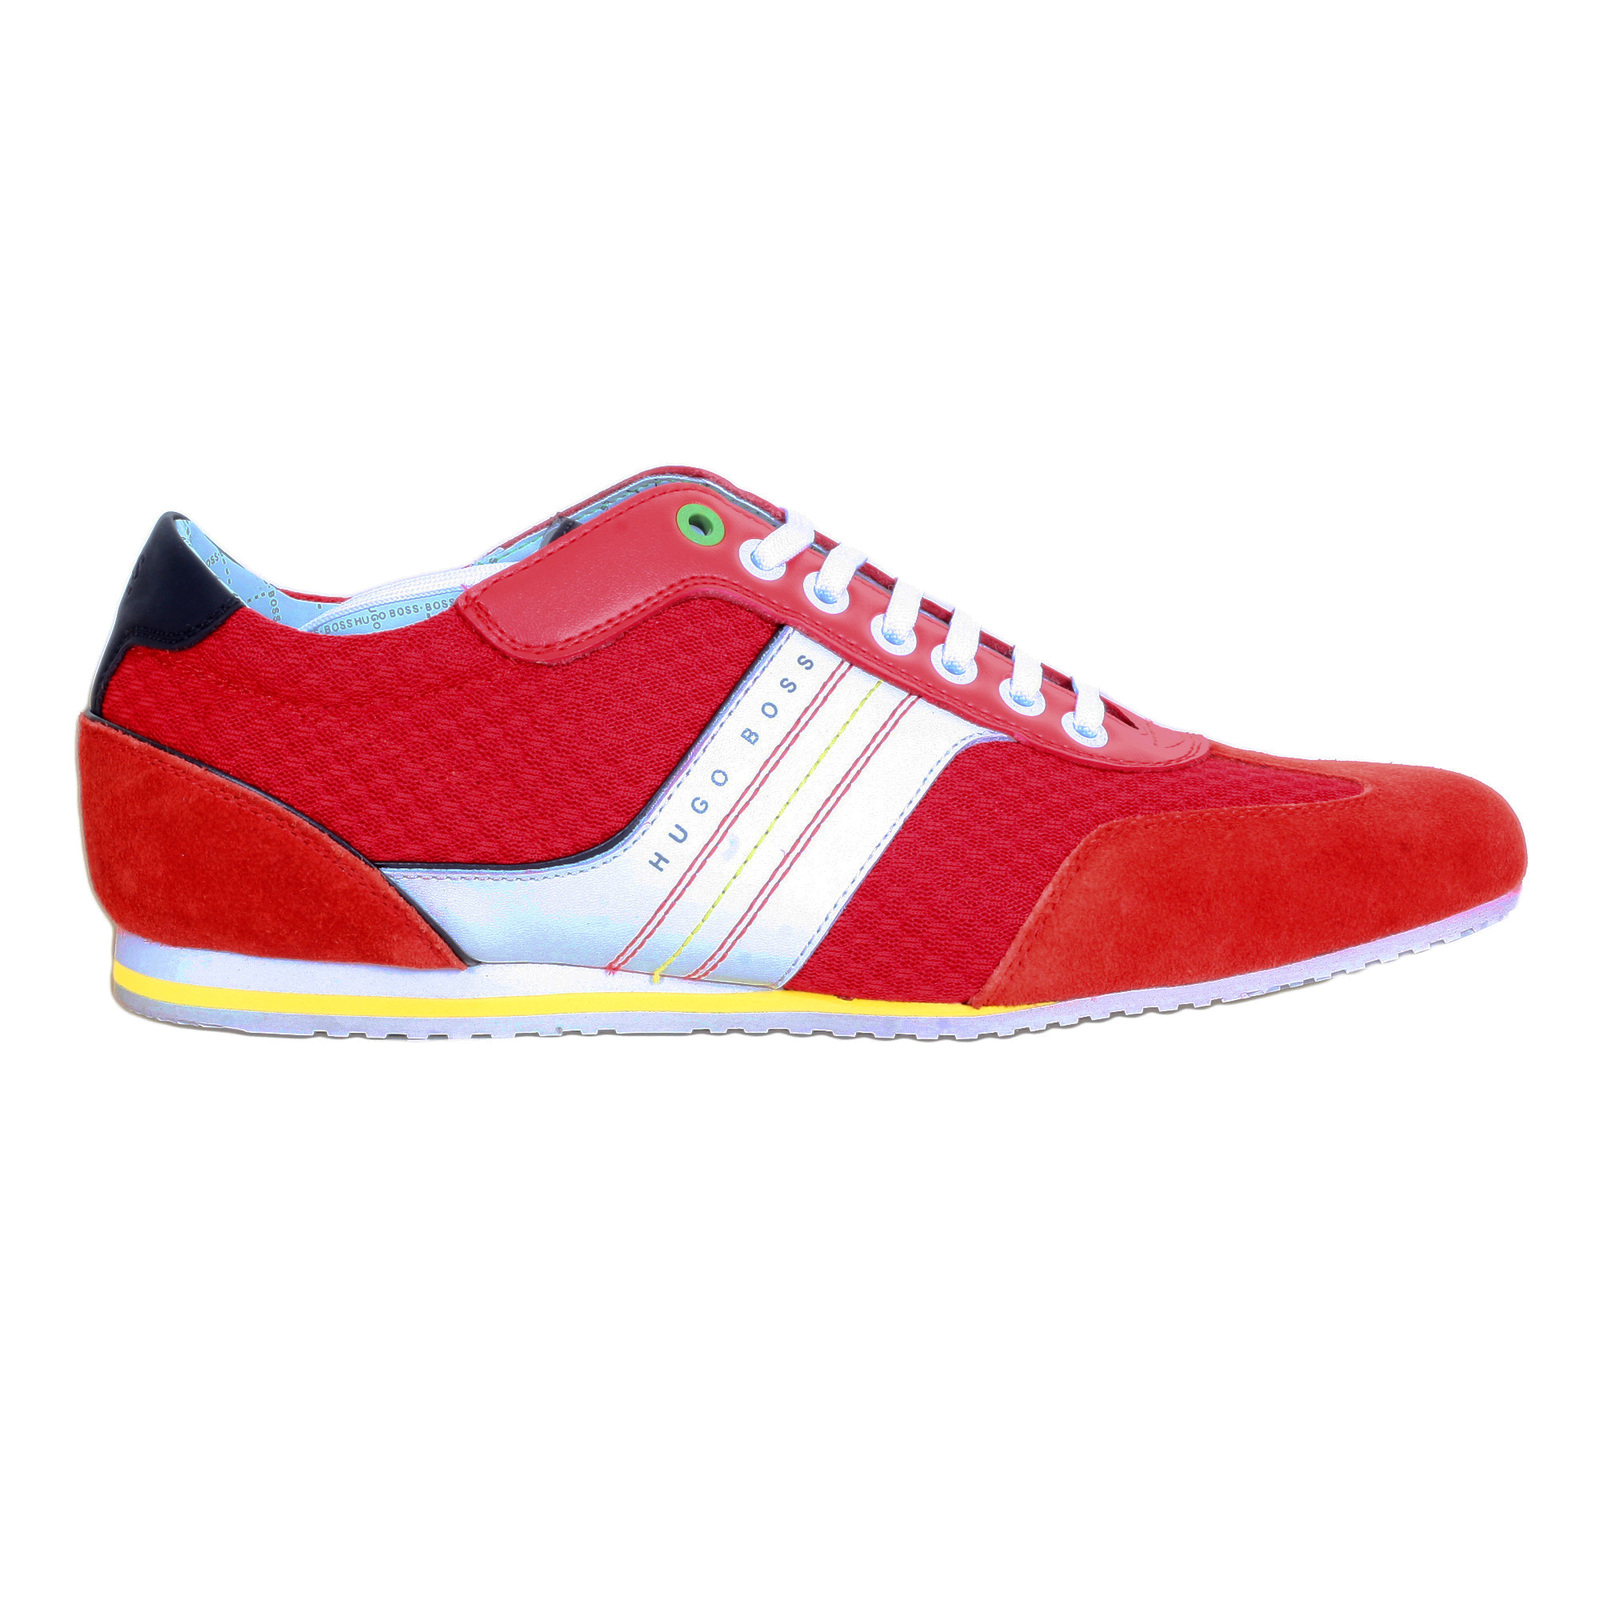 06f12d5168 Buy Mens Low Top Hugo Boss Green Trainers in Bright Red